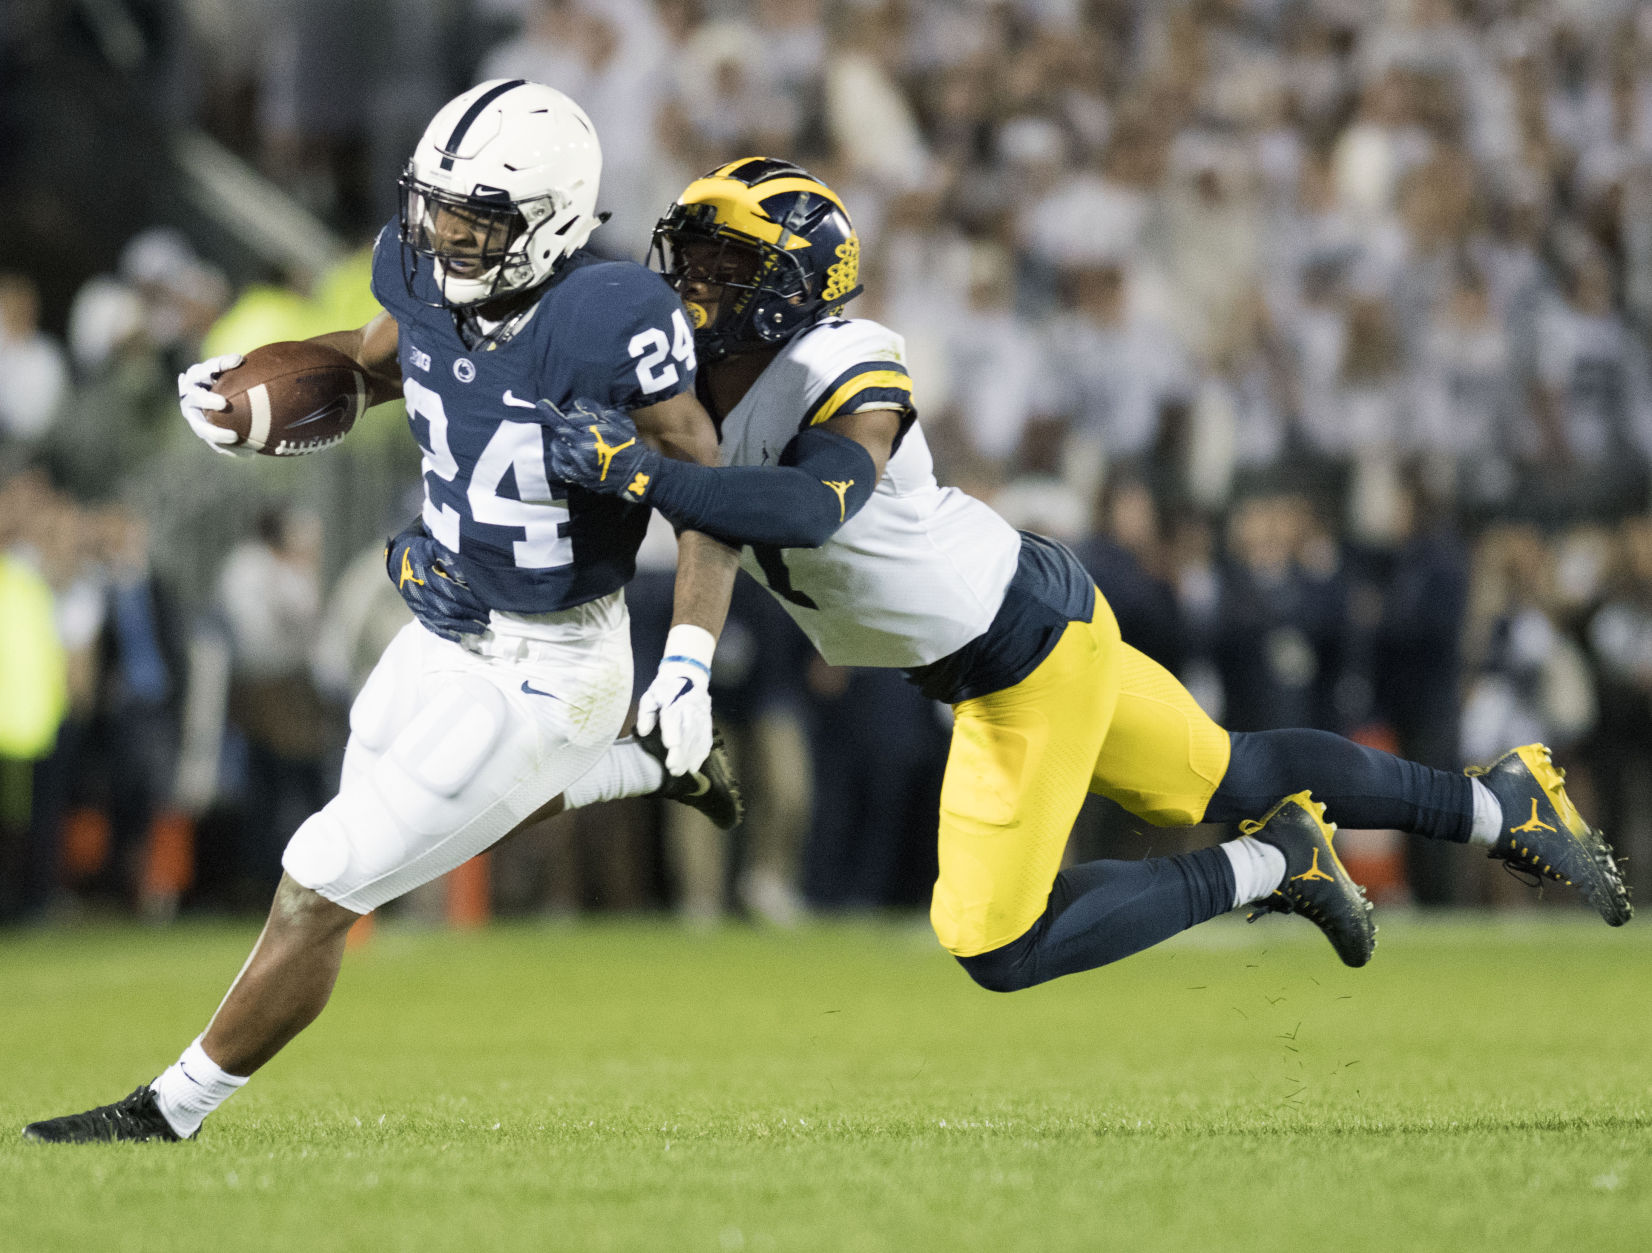 Penn State Football Breaking Down Penn State Football S Rb Situation Next Season And